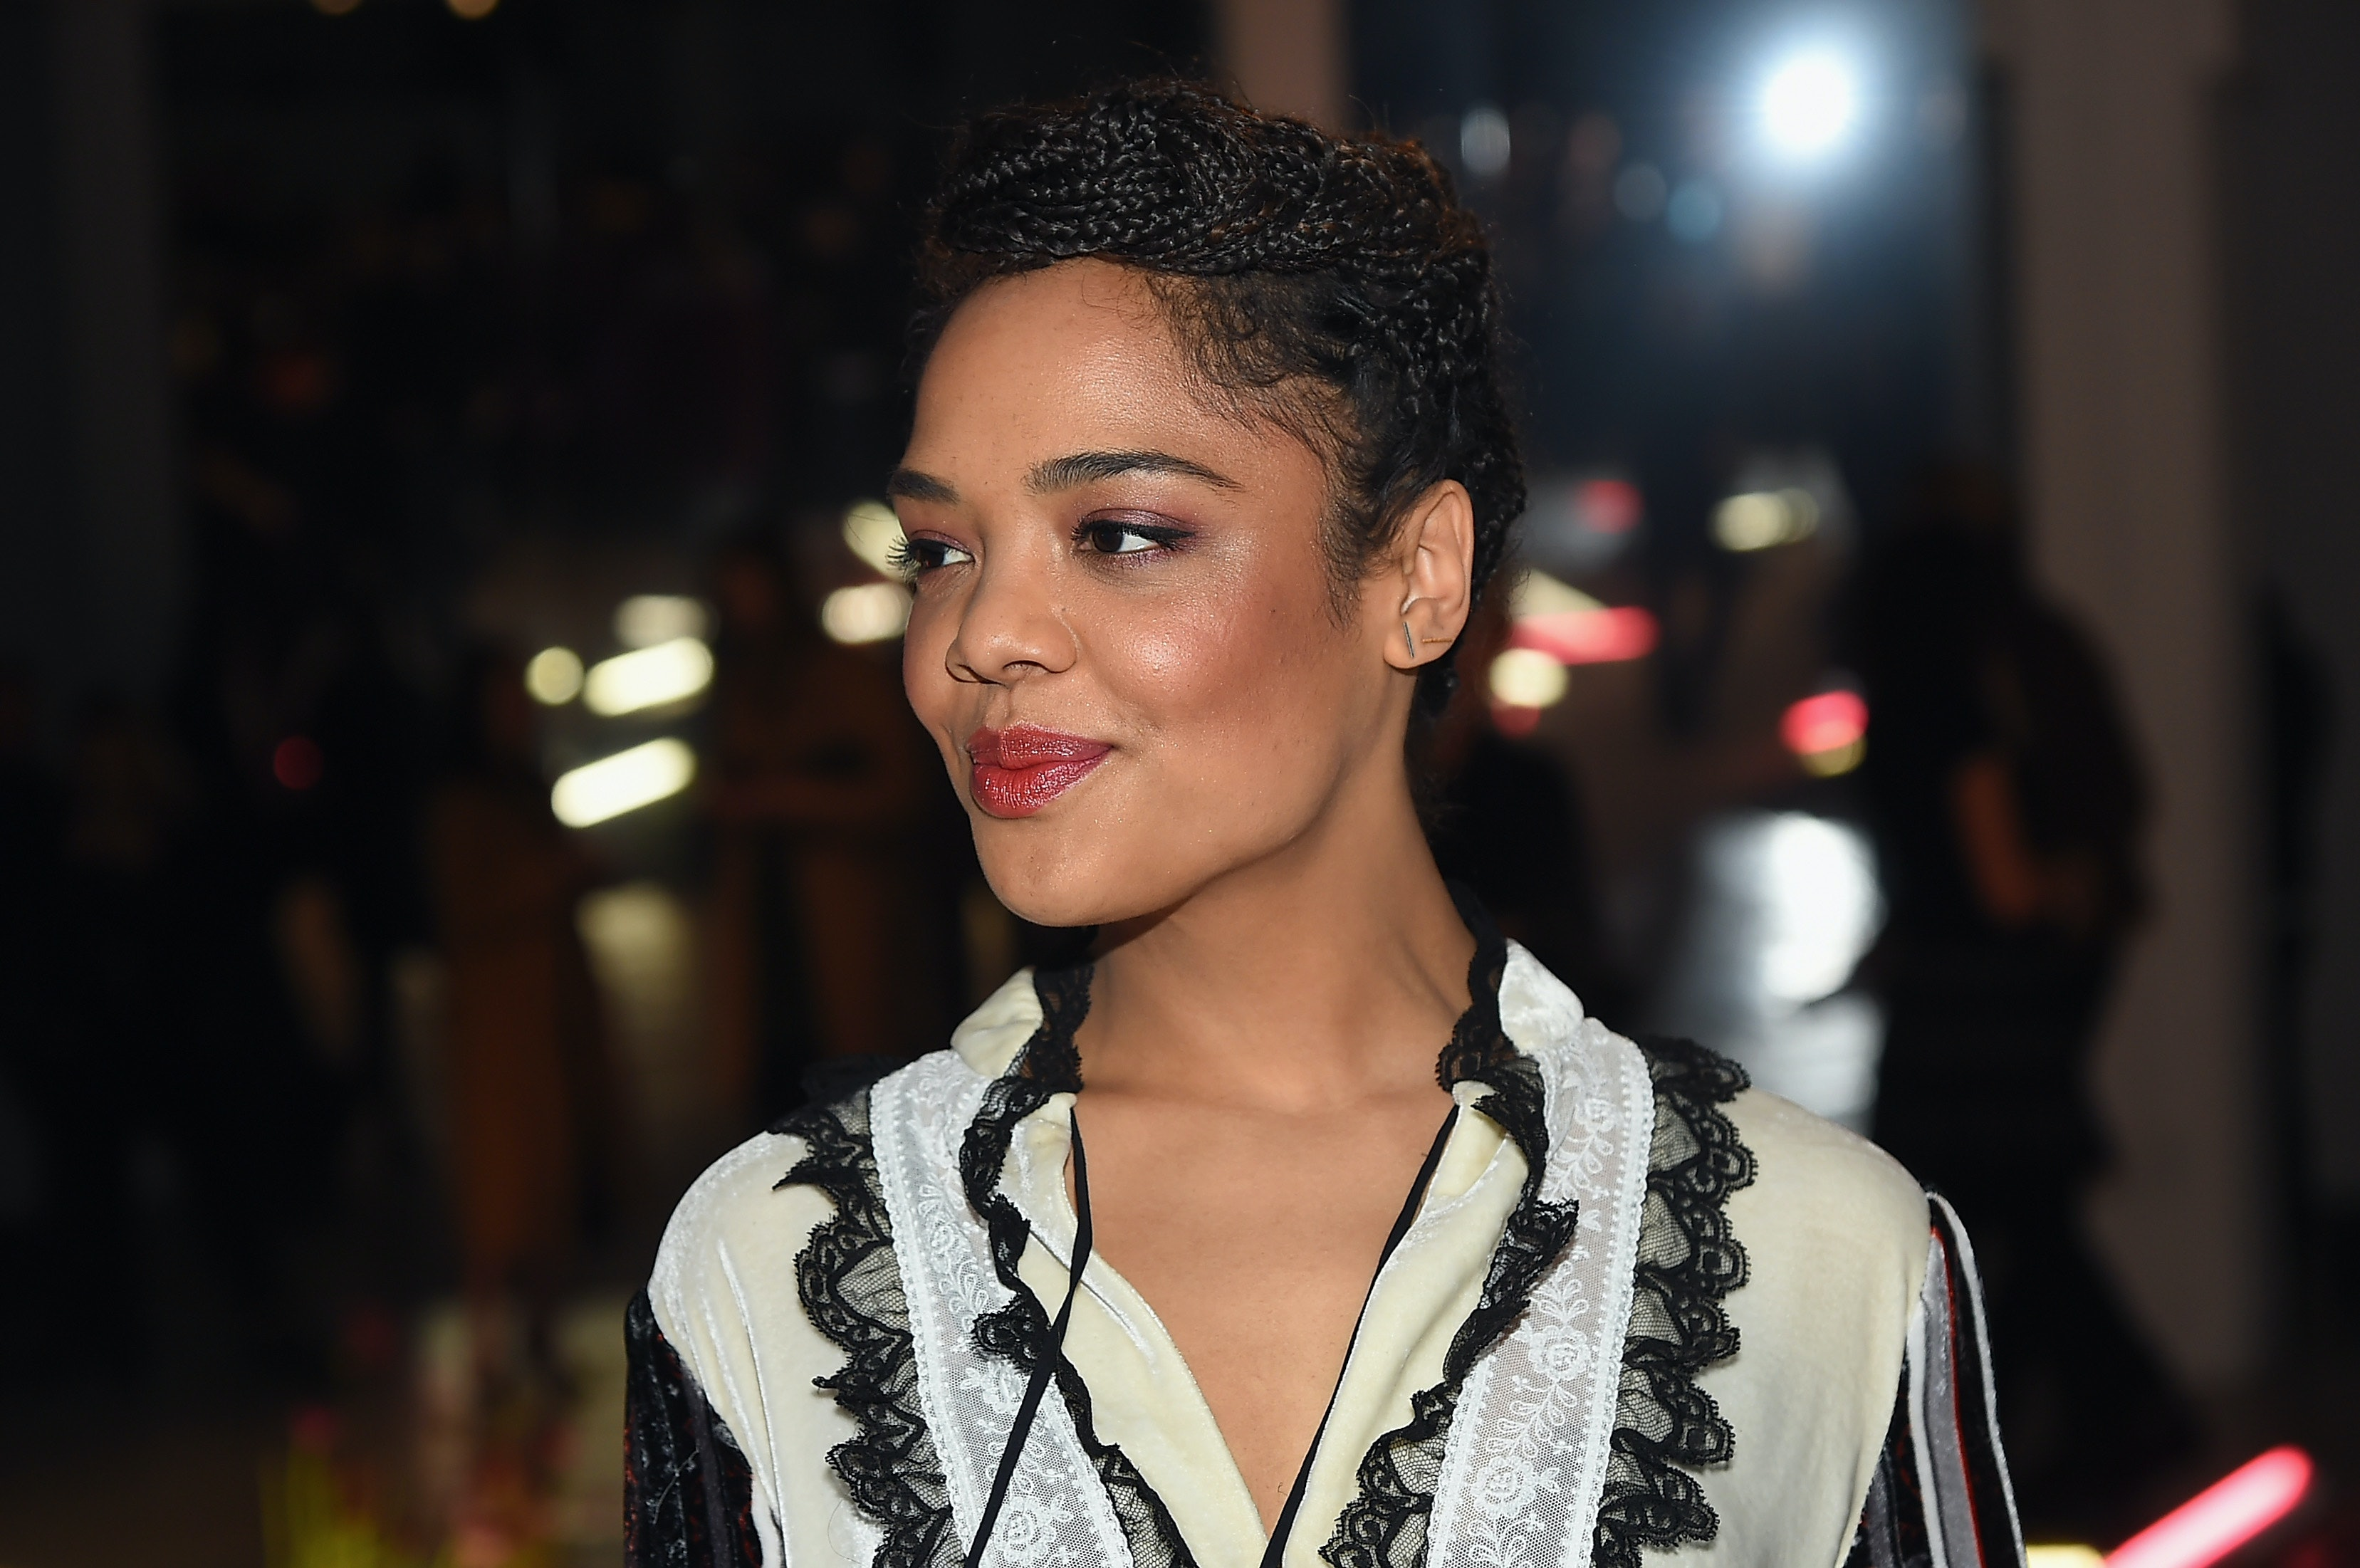 Tessa Thompson From 'Thor' Is Sick Of